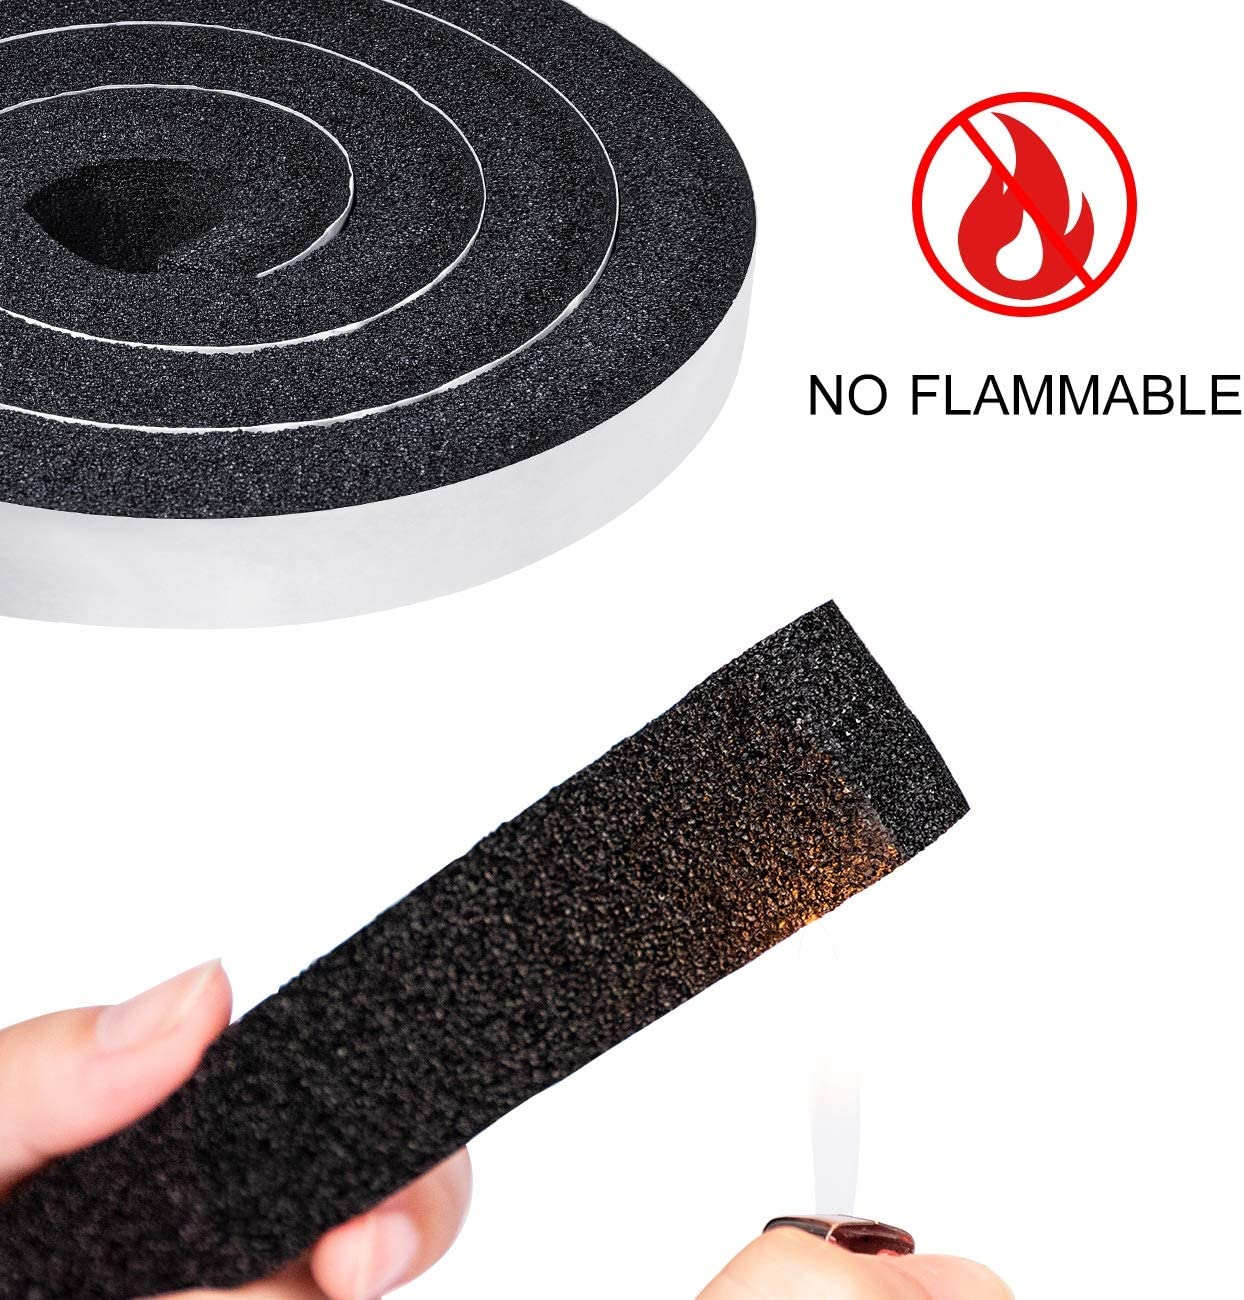 Open Cell Foam Weather Stripping Seal InsulatingTape Self Adhesive Total 13 Feet Length Window Air Conditioning Foam Strips 1 inch W X 1 inch T 2 Rolls of 6.5 Ft Each